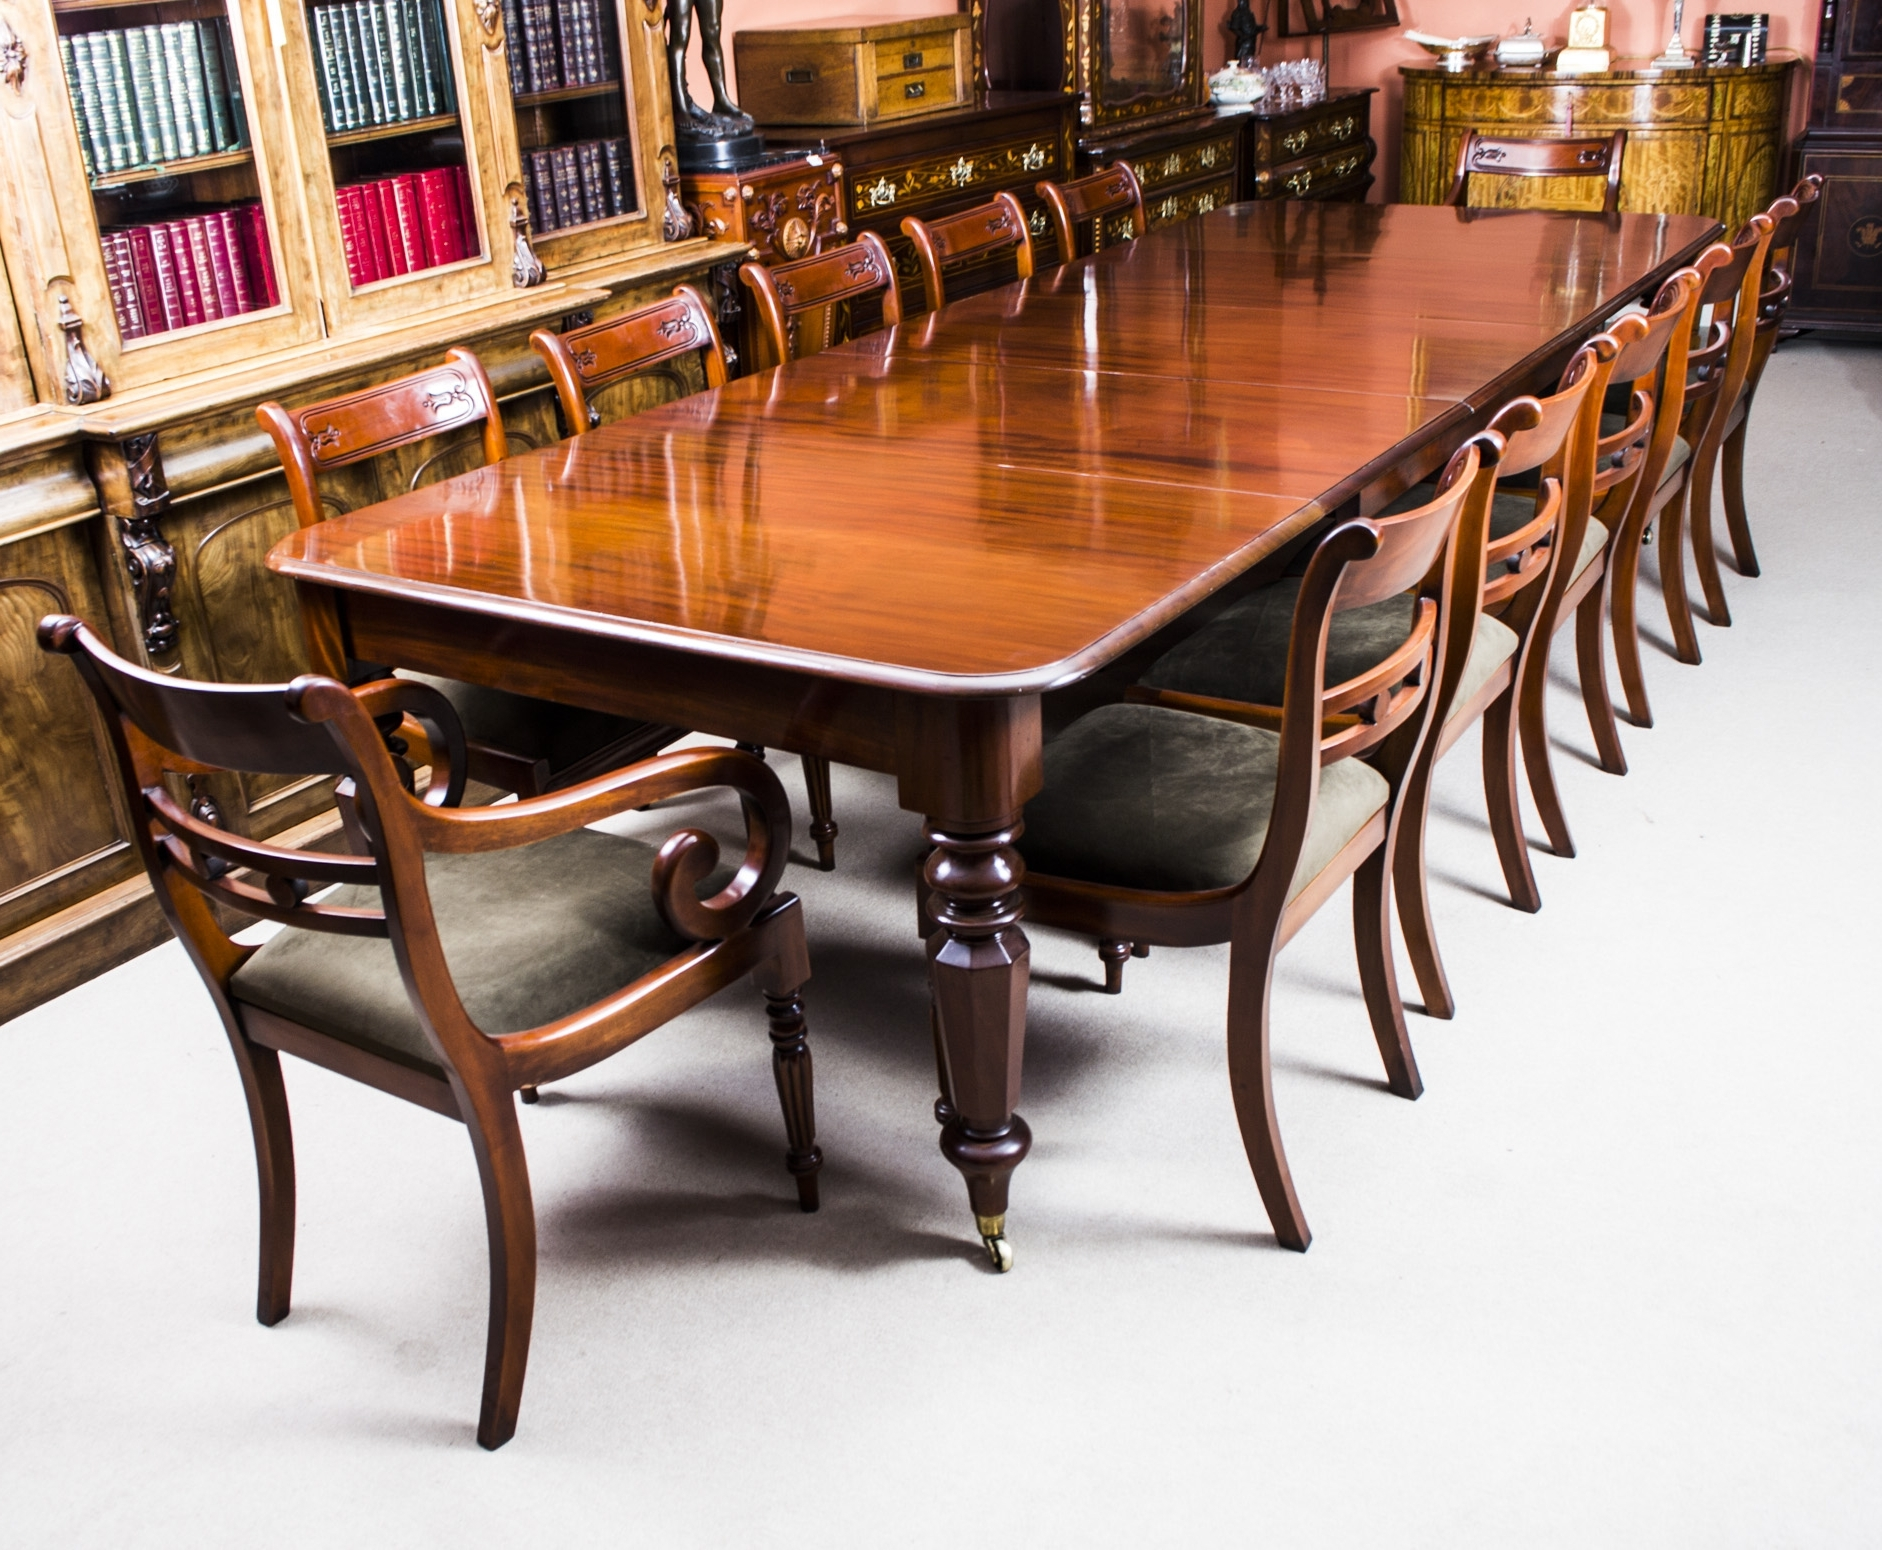 Mahogany Extending Dining Tables Inside Popular Antique Wiliam Iv Mahogany Extending Dining Table & 12 Chairs (View 11 of 25)